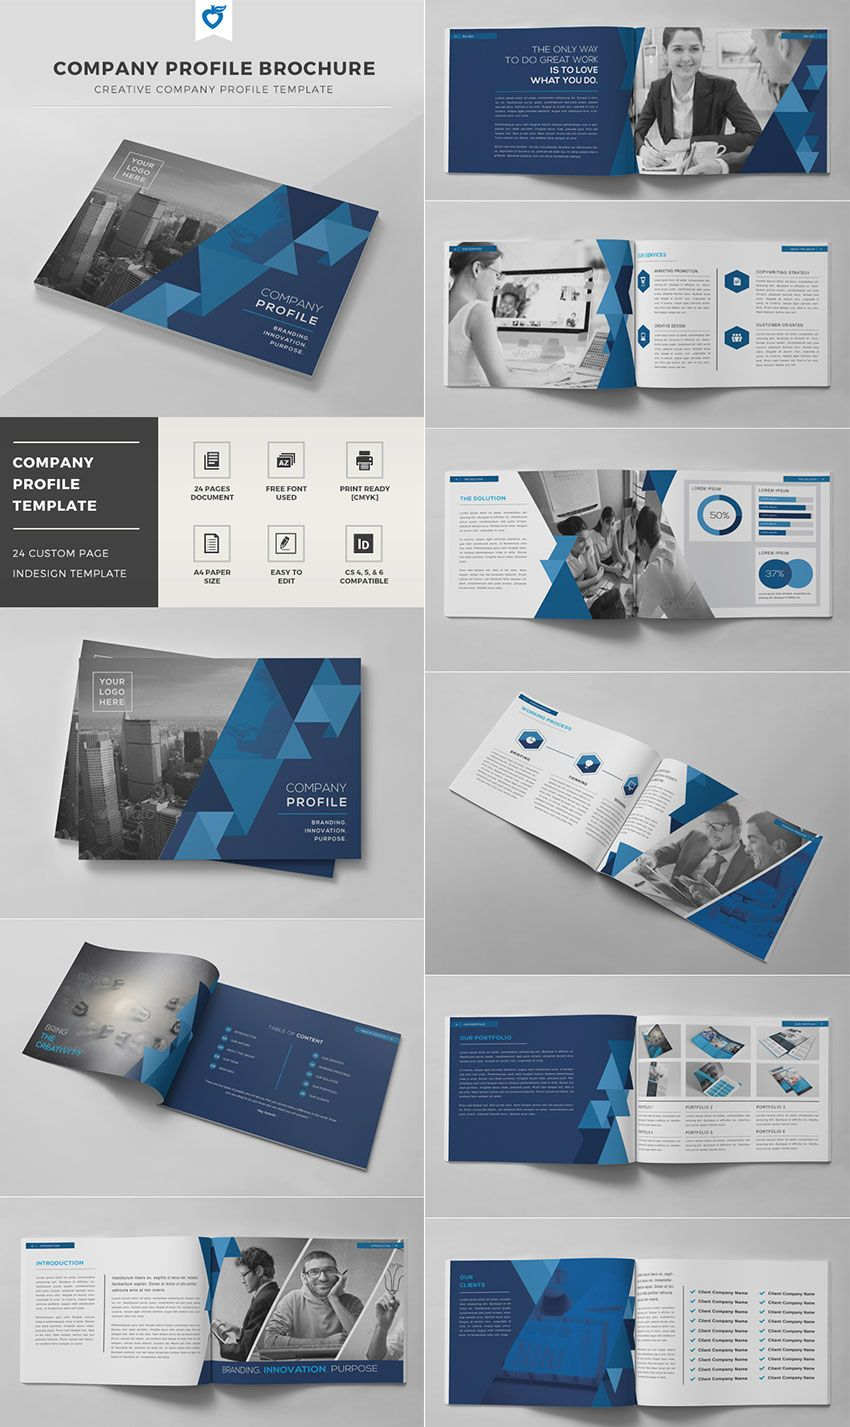 Company Profile Brochure - INDD Template | brochure | Pinterest ...